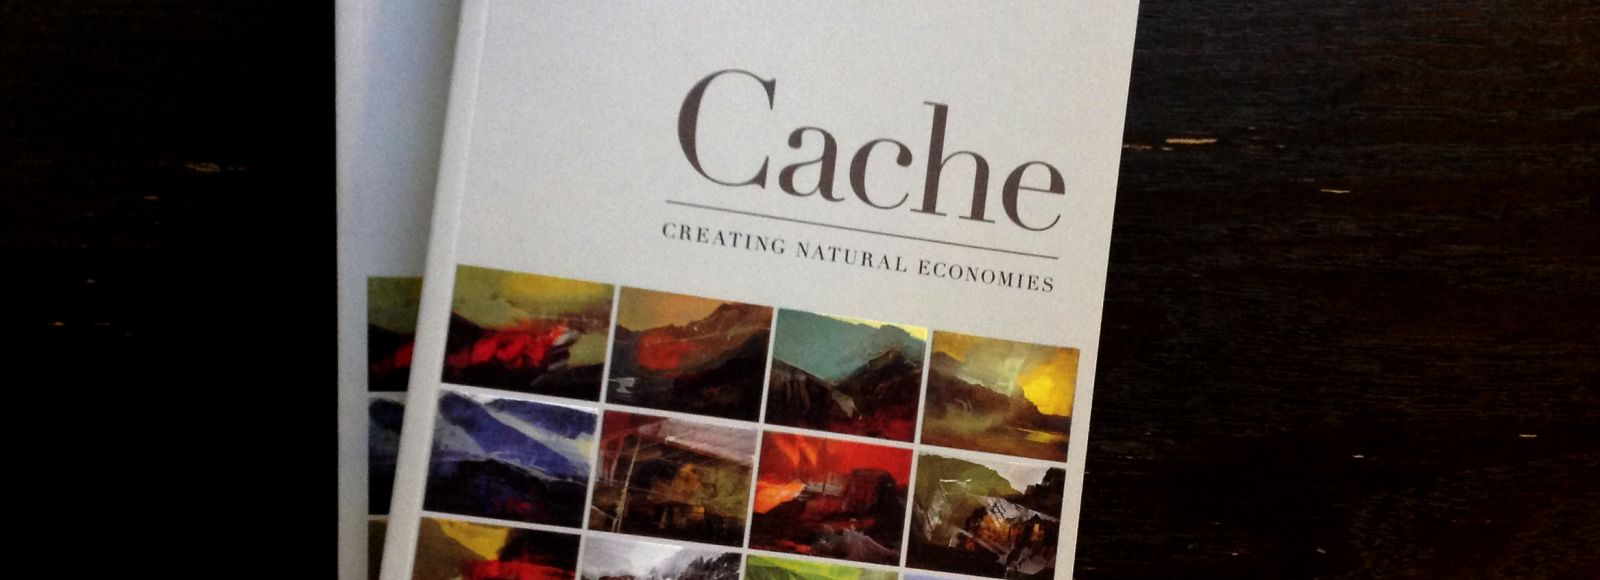 photo of a book from above, Cache by spencer Beebe